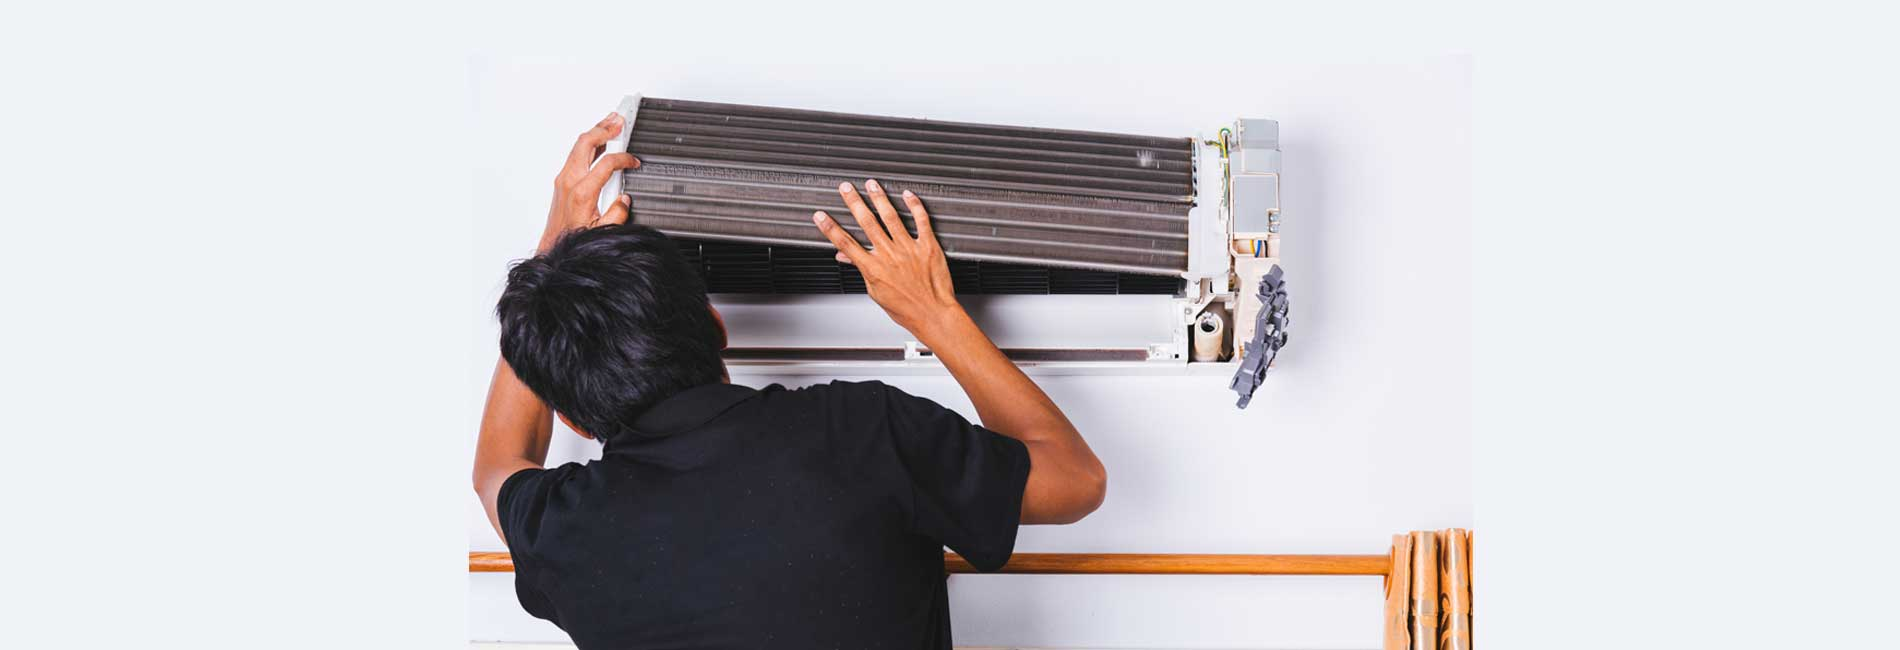 Daikin Air Conditioner Repair in Tirusulam